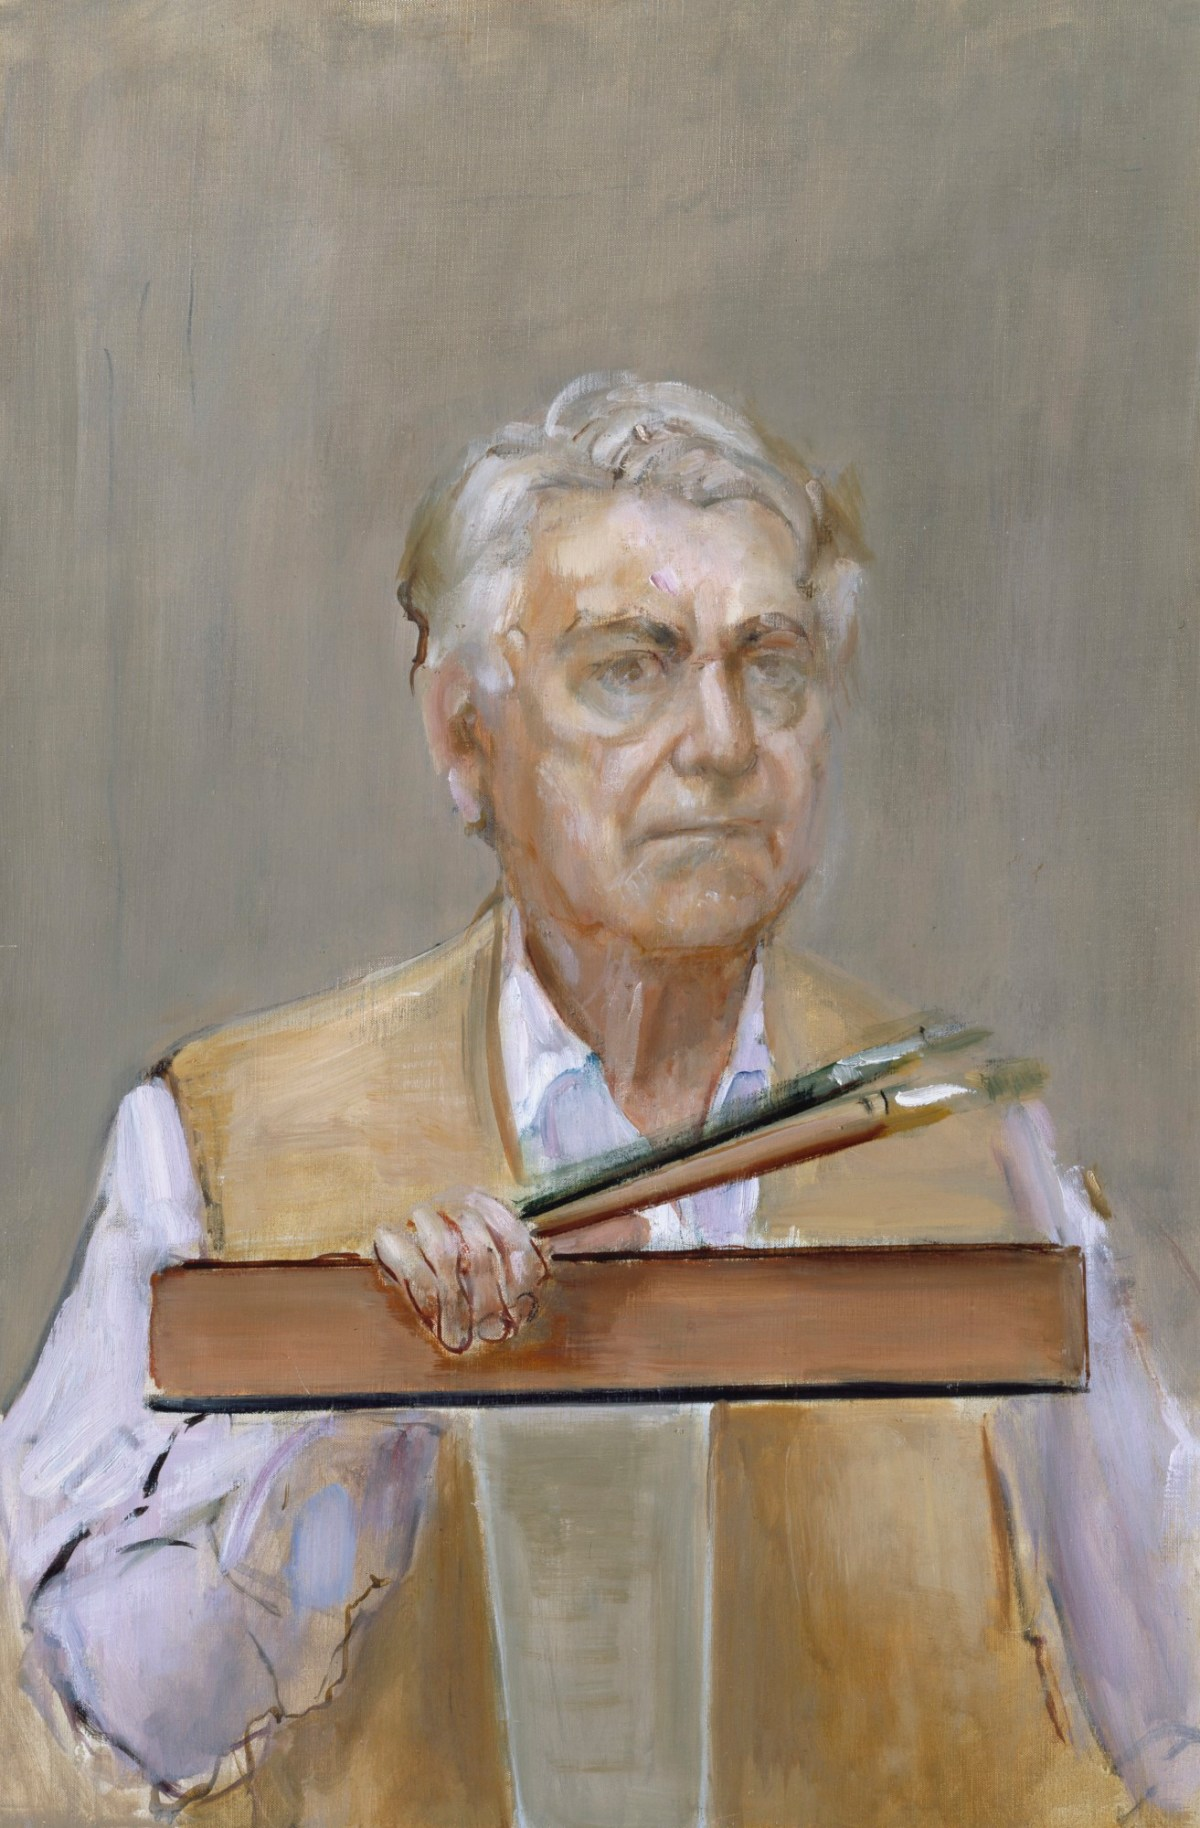 Perry Auto Sales >> Self Portrait with Set Square | Works of Art | RA Collection | Royal Academy of Arts